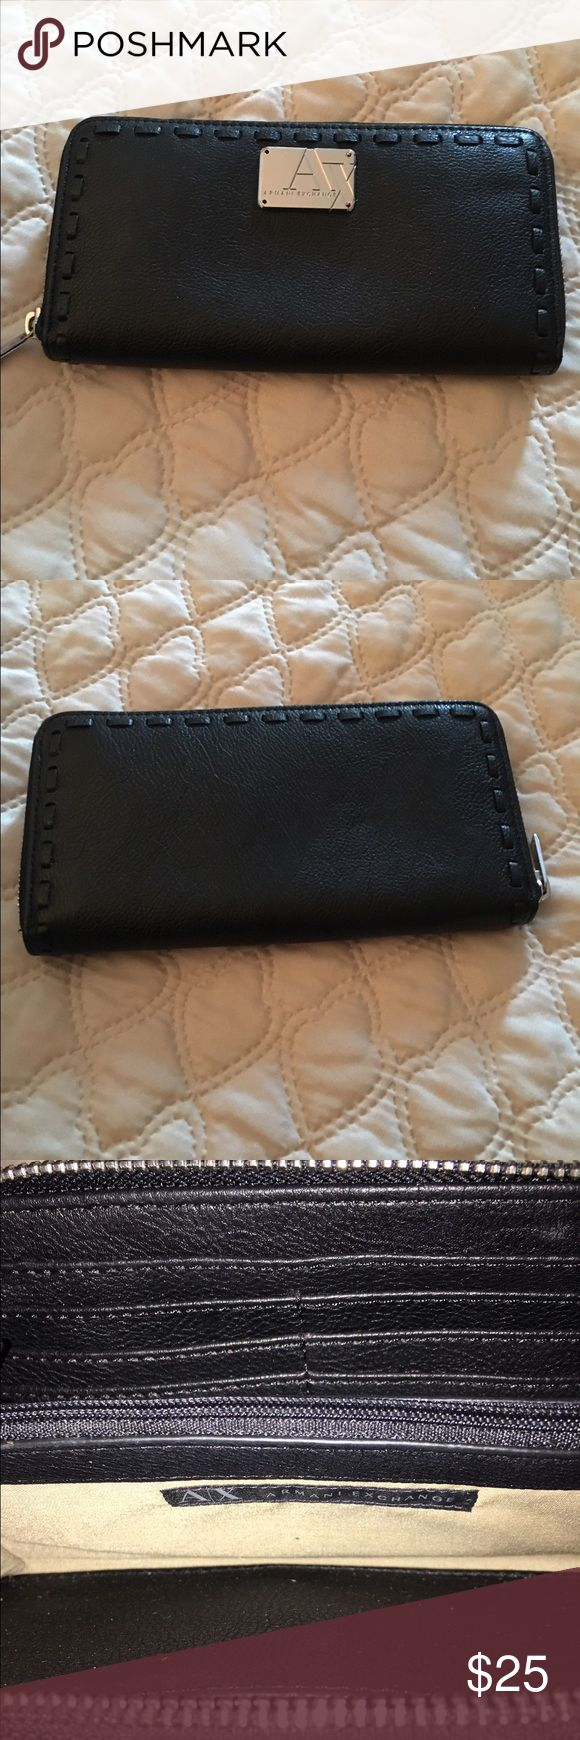 🎉Final Price🎉 Armani Exchange Wallet Like brand new Armani Exchange leather wallet.. Armani Exchange Bags Wallets